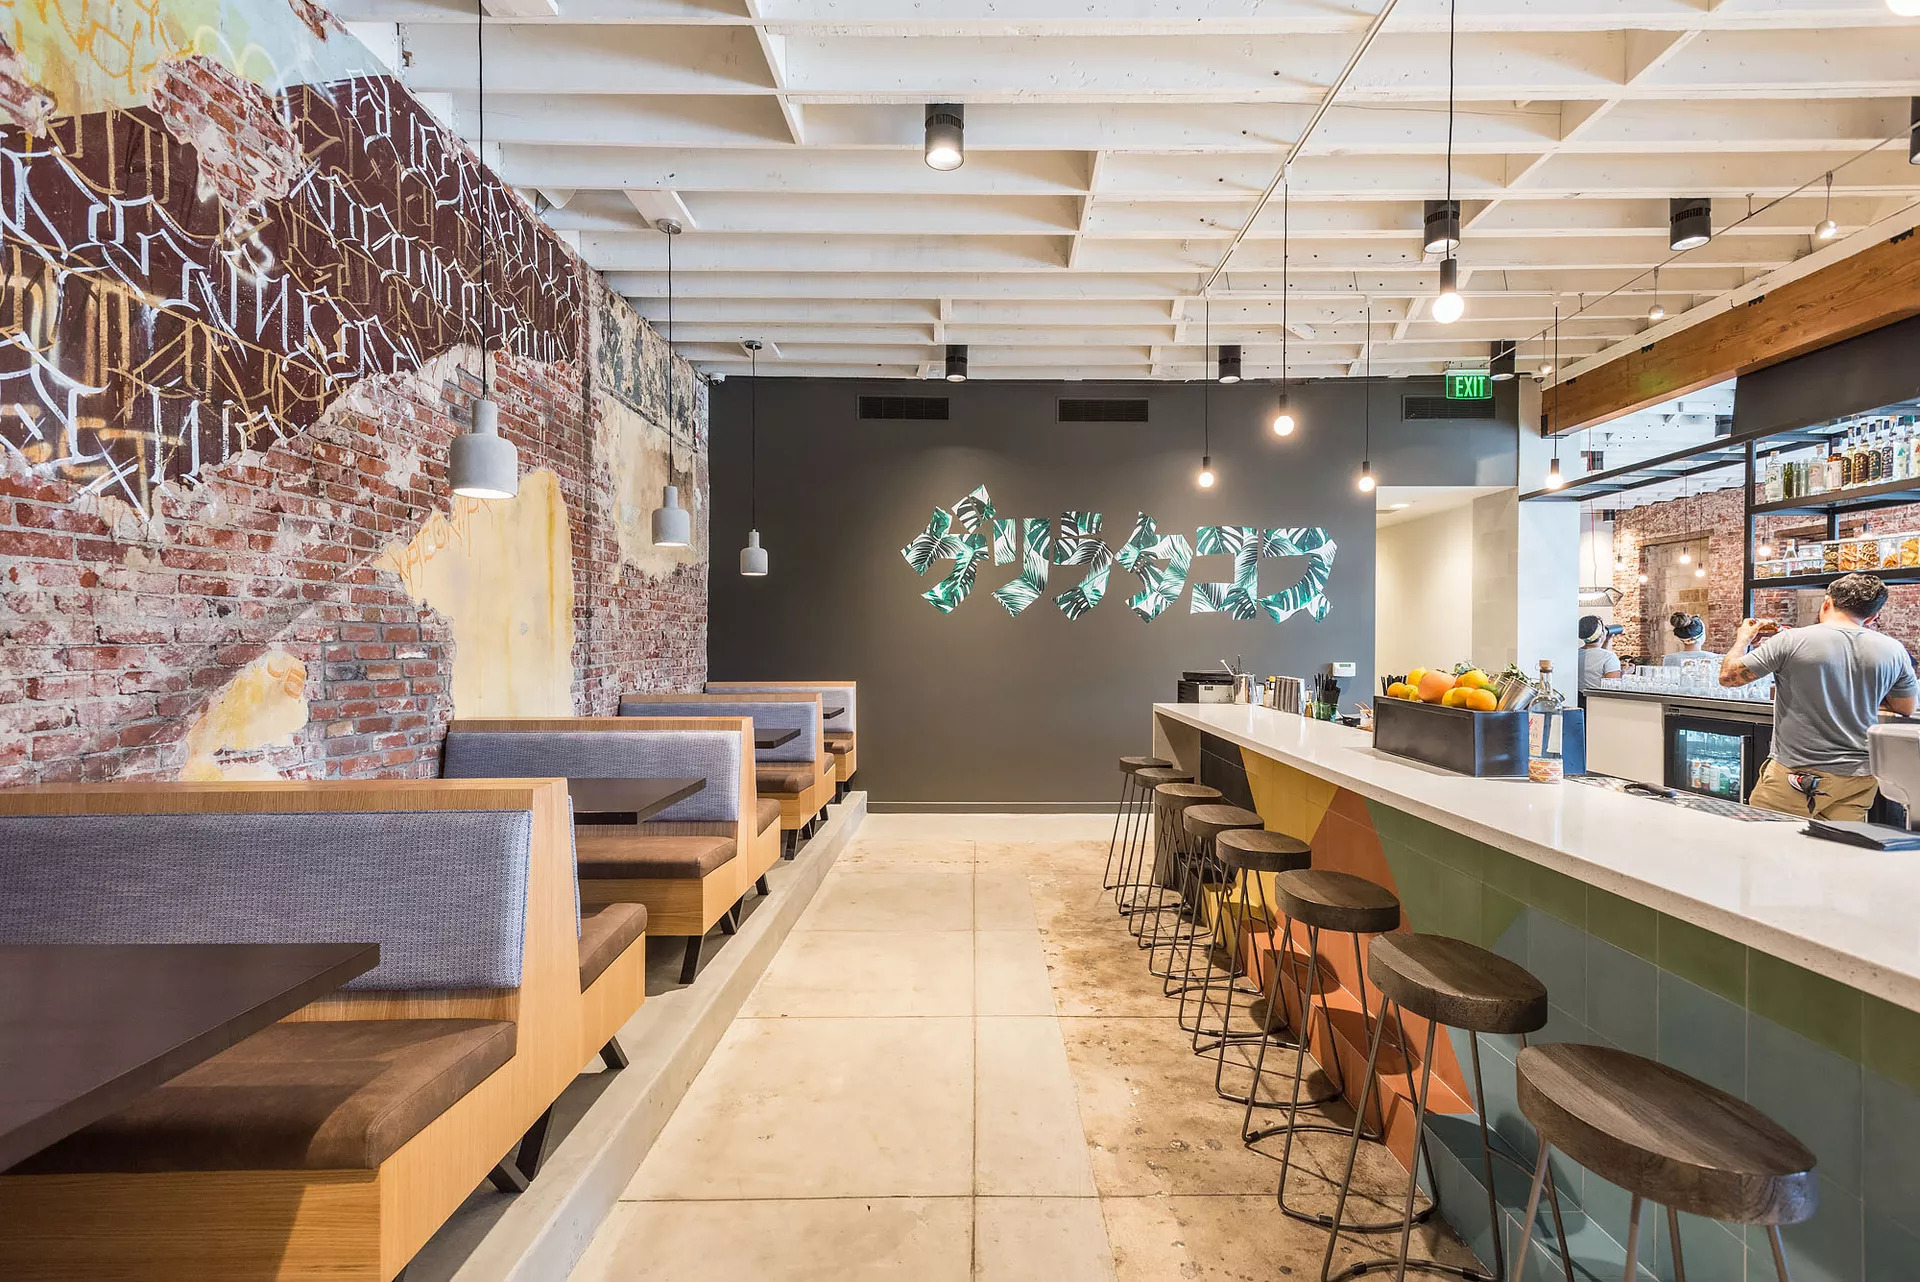 The engaging interior design of Guerrilla Tacos in Los Angeles, California, featuring Atria 6 high performing light fixtures by Meteor Lighting. Photos by Wonho Frank Lee